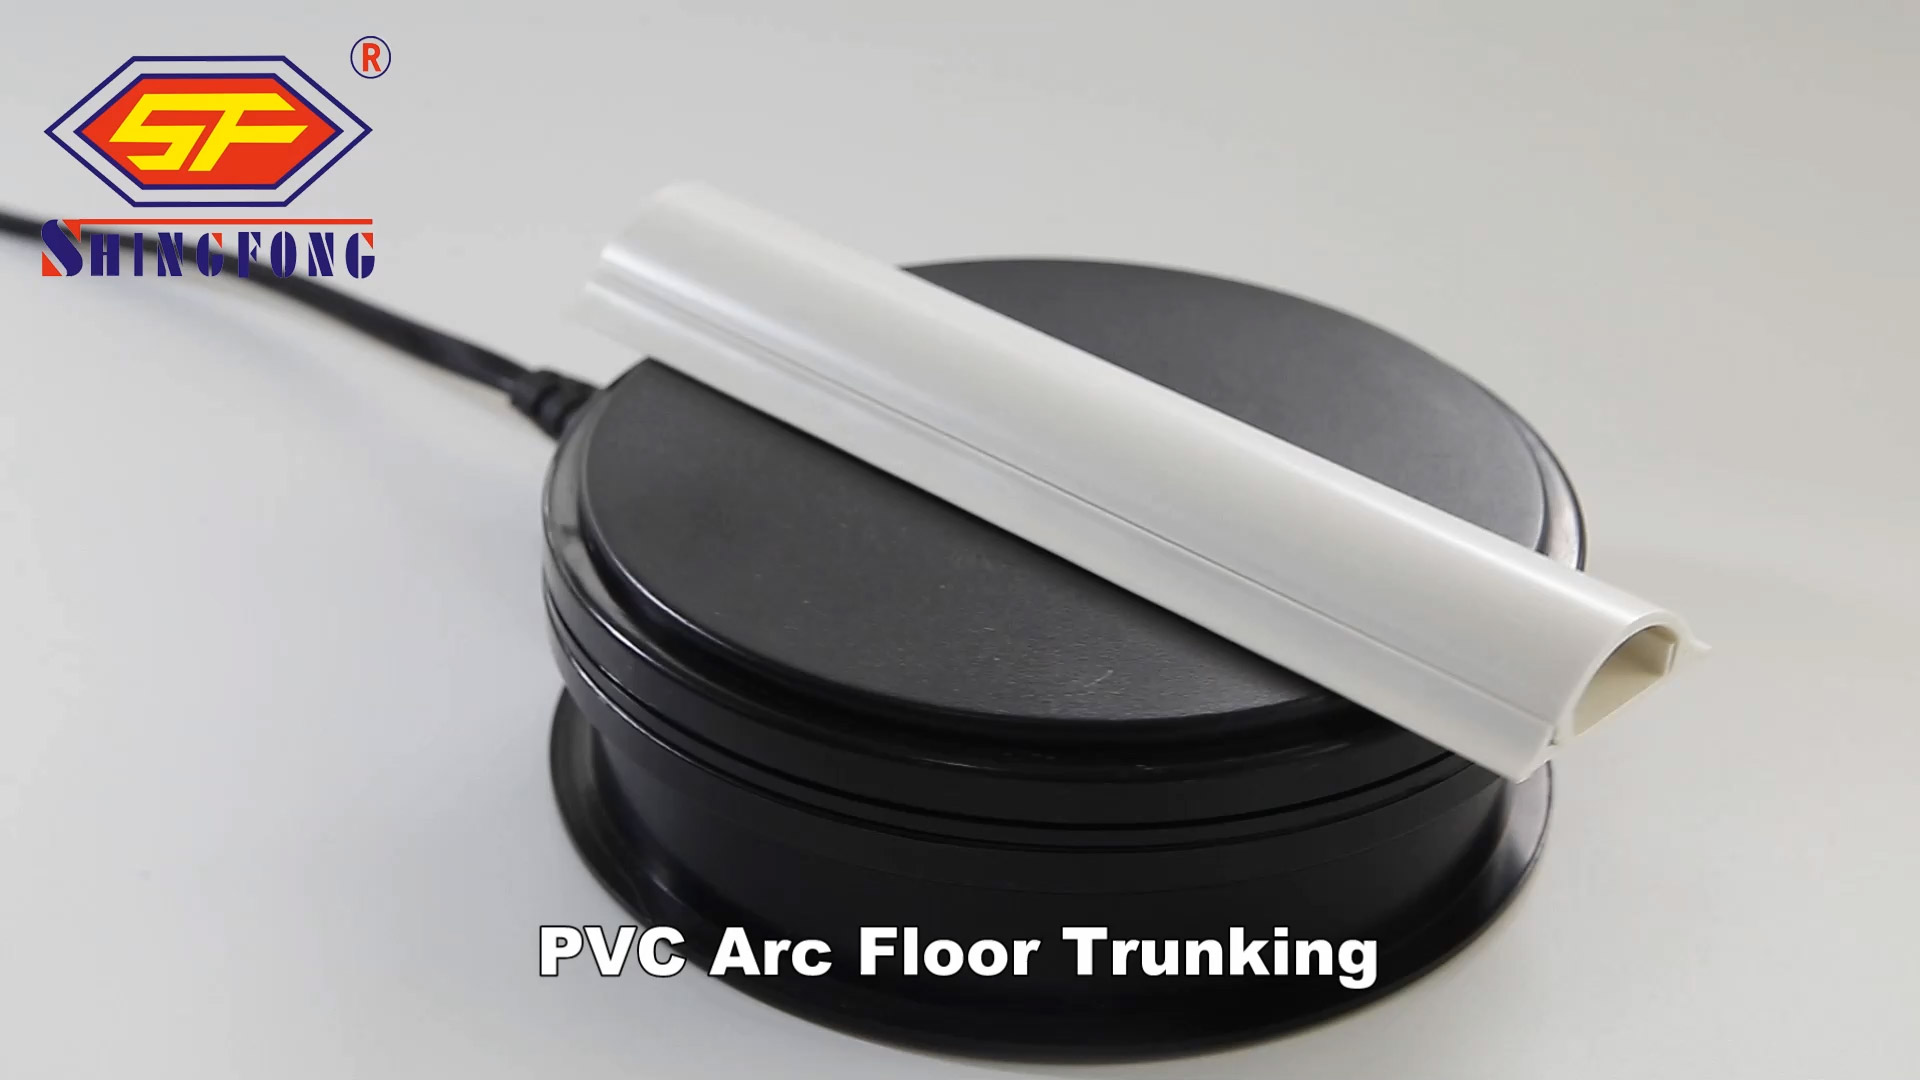 China Best Quality PVC Arc Floor Trunking Factory manufacturers - Shingfong